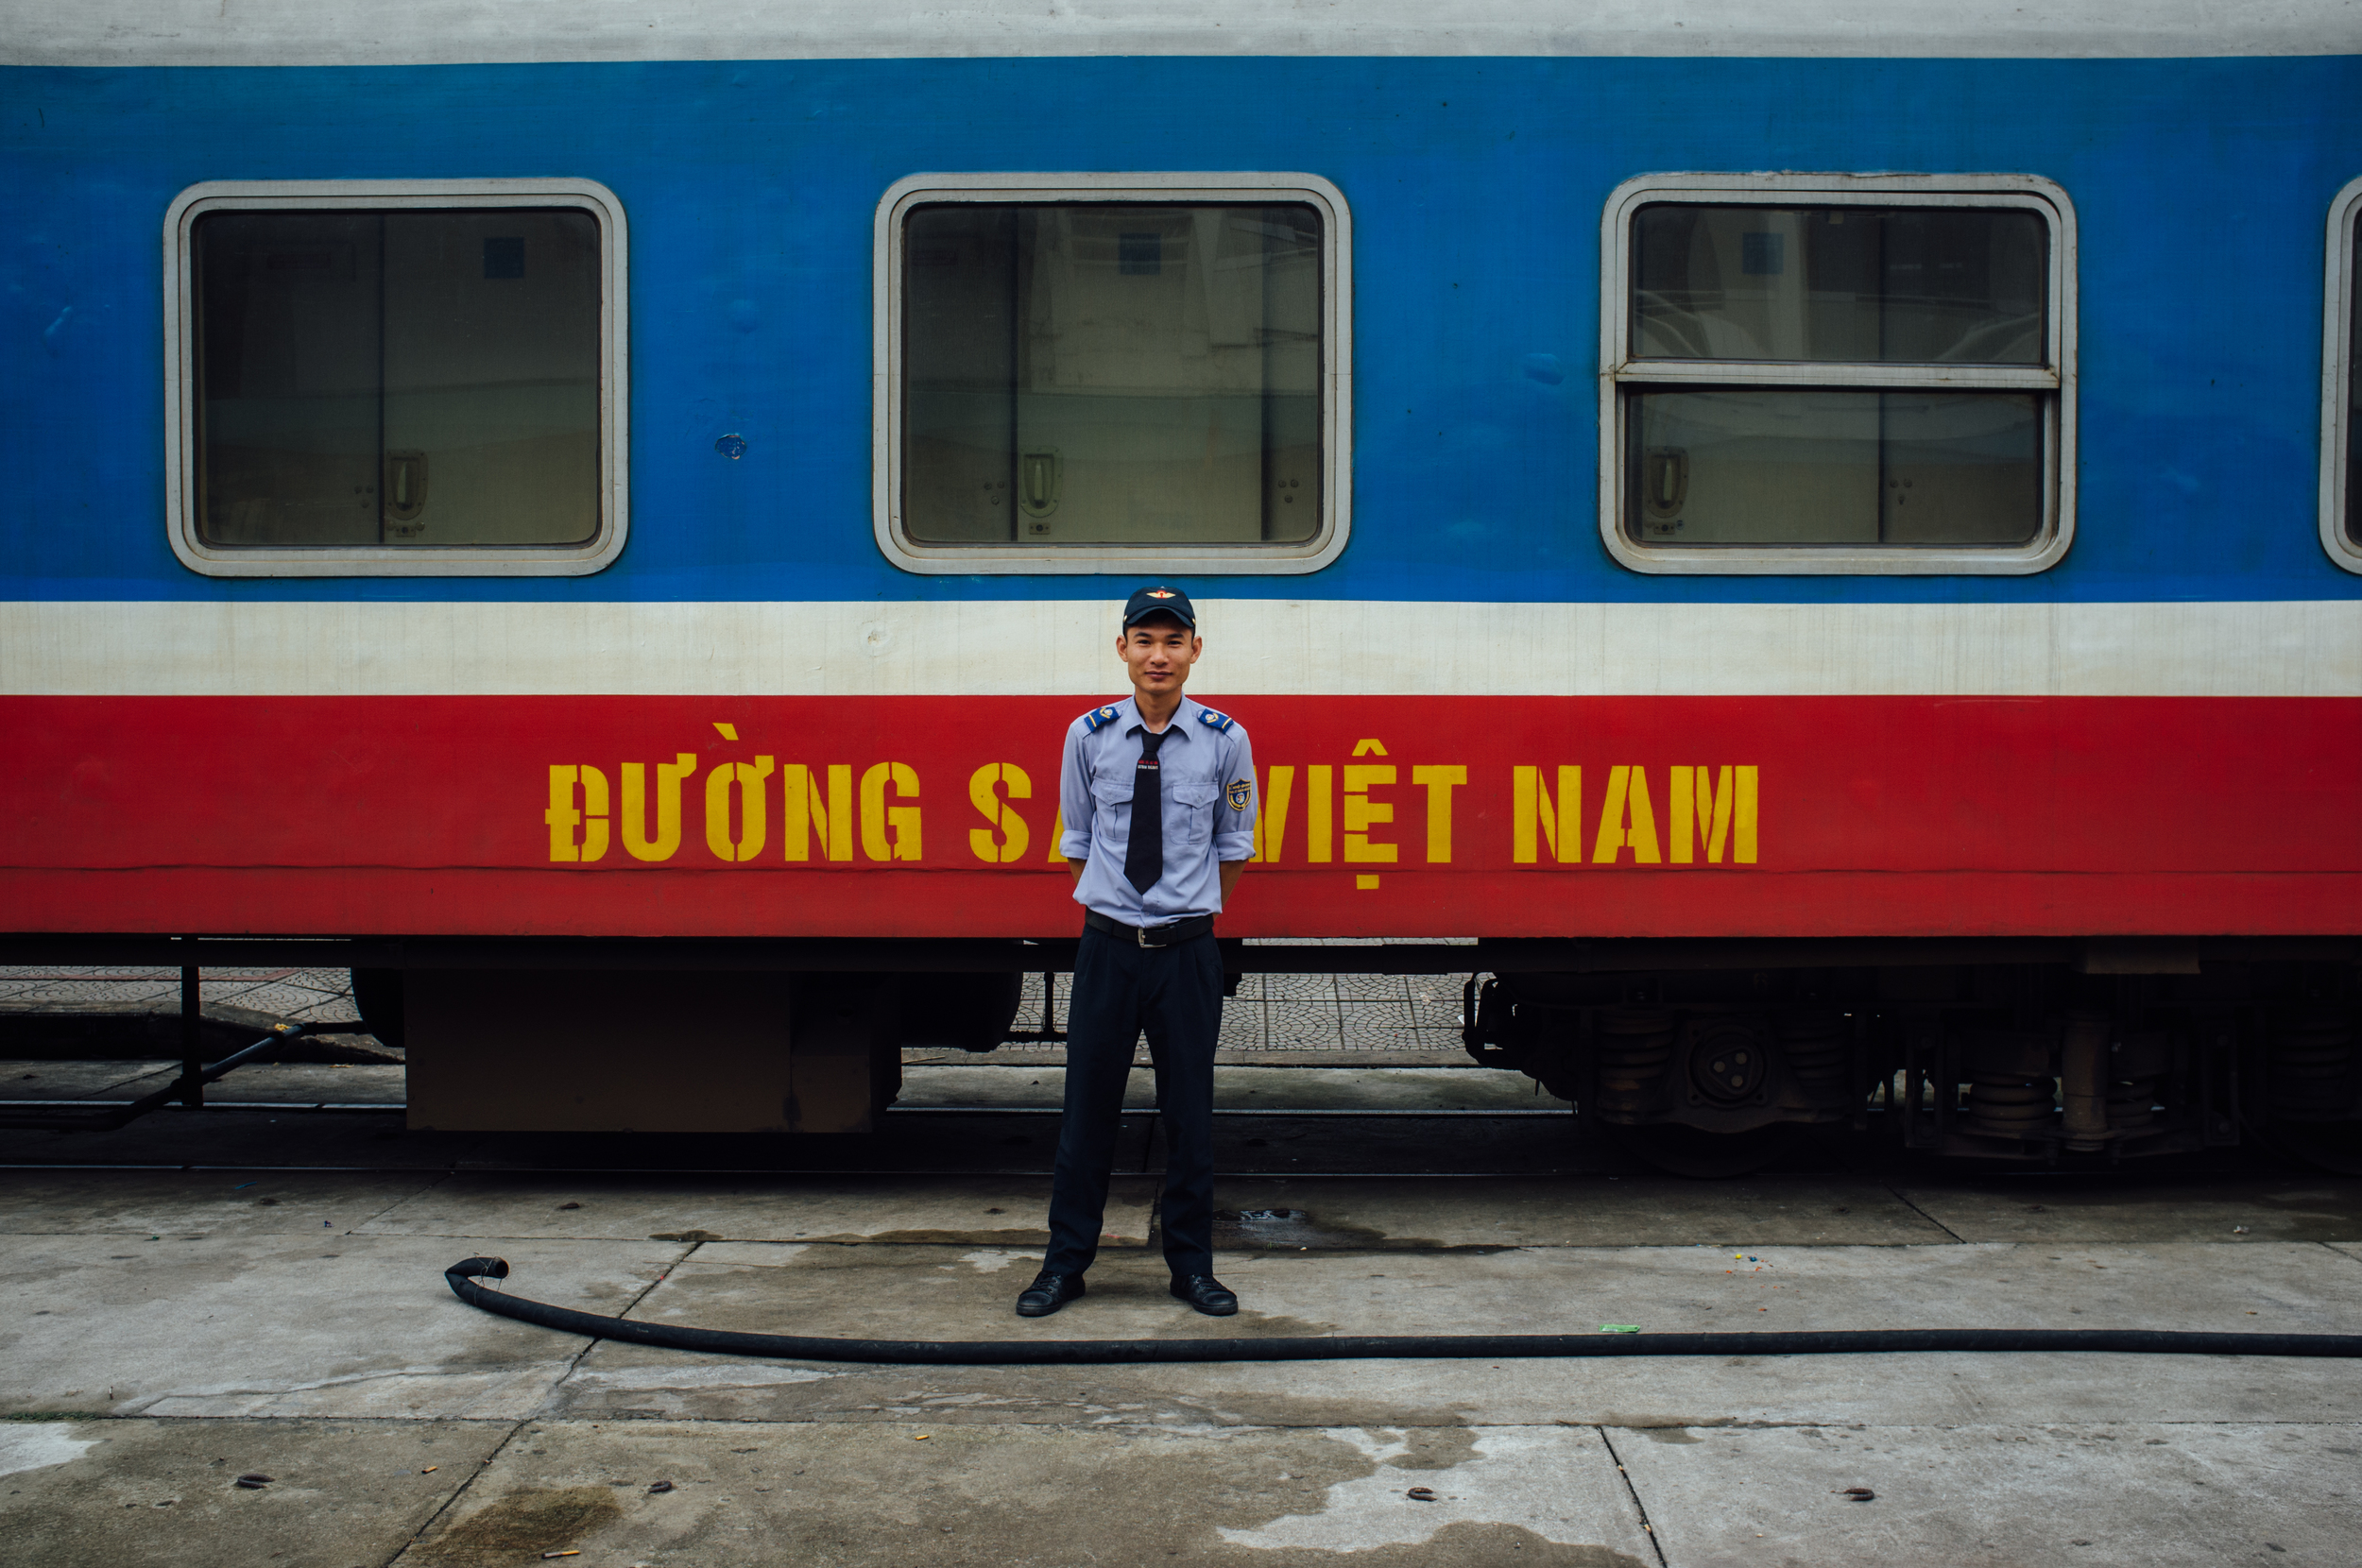 Vietnam Railways employee standing proud